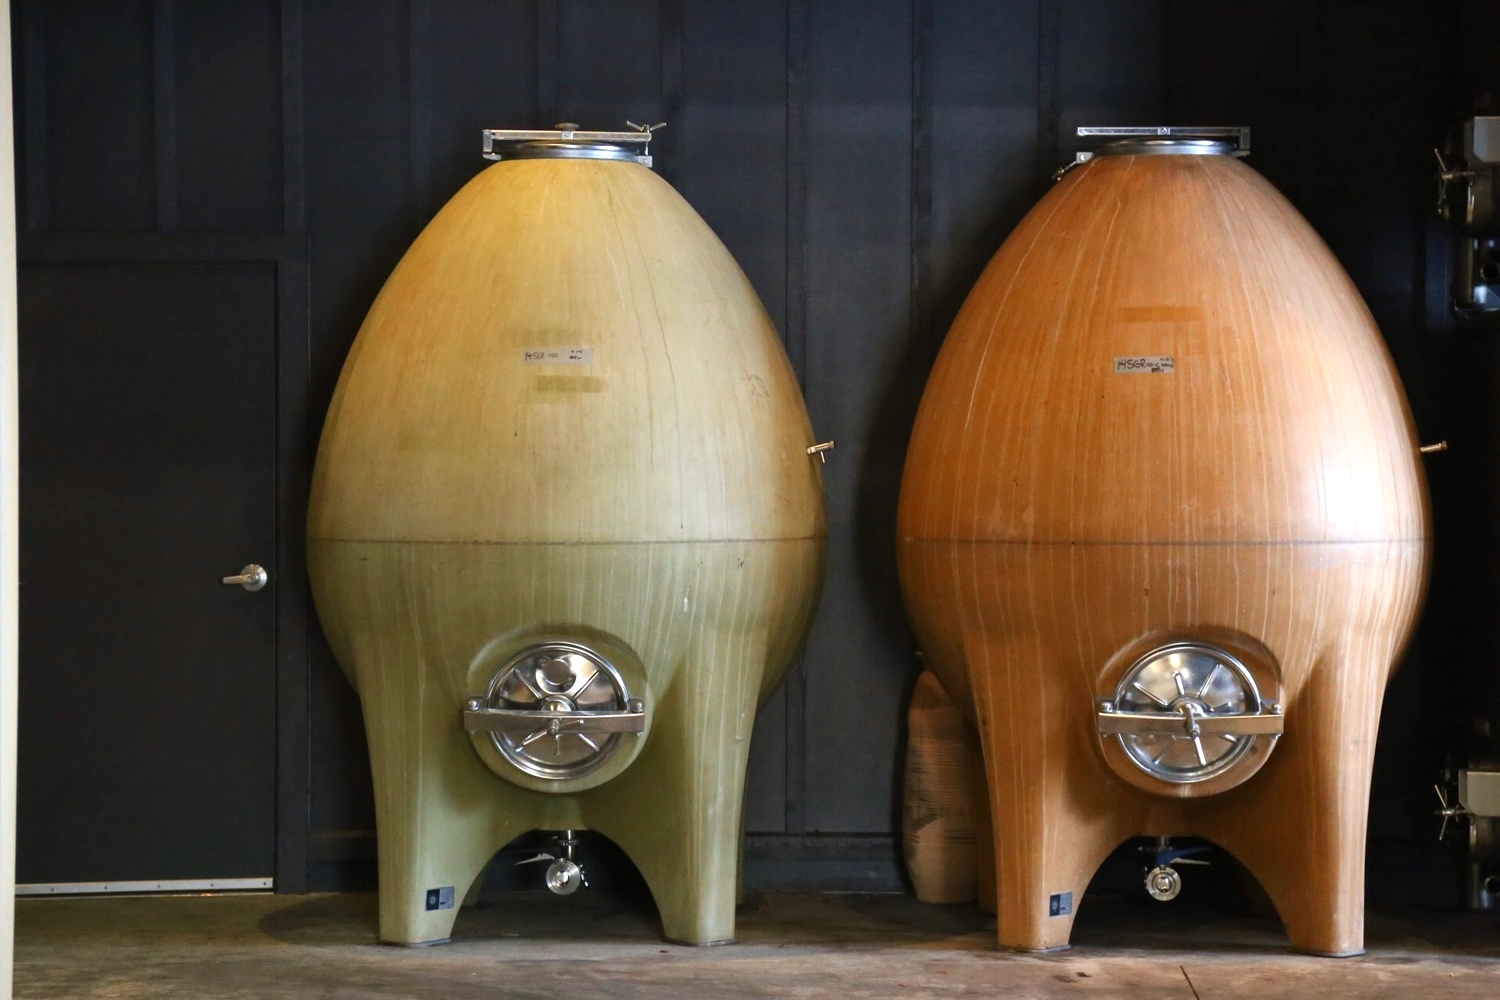 Concrete eggs at Wind Gap Winery, January 2015